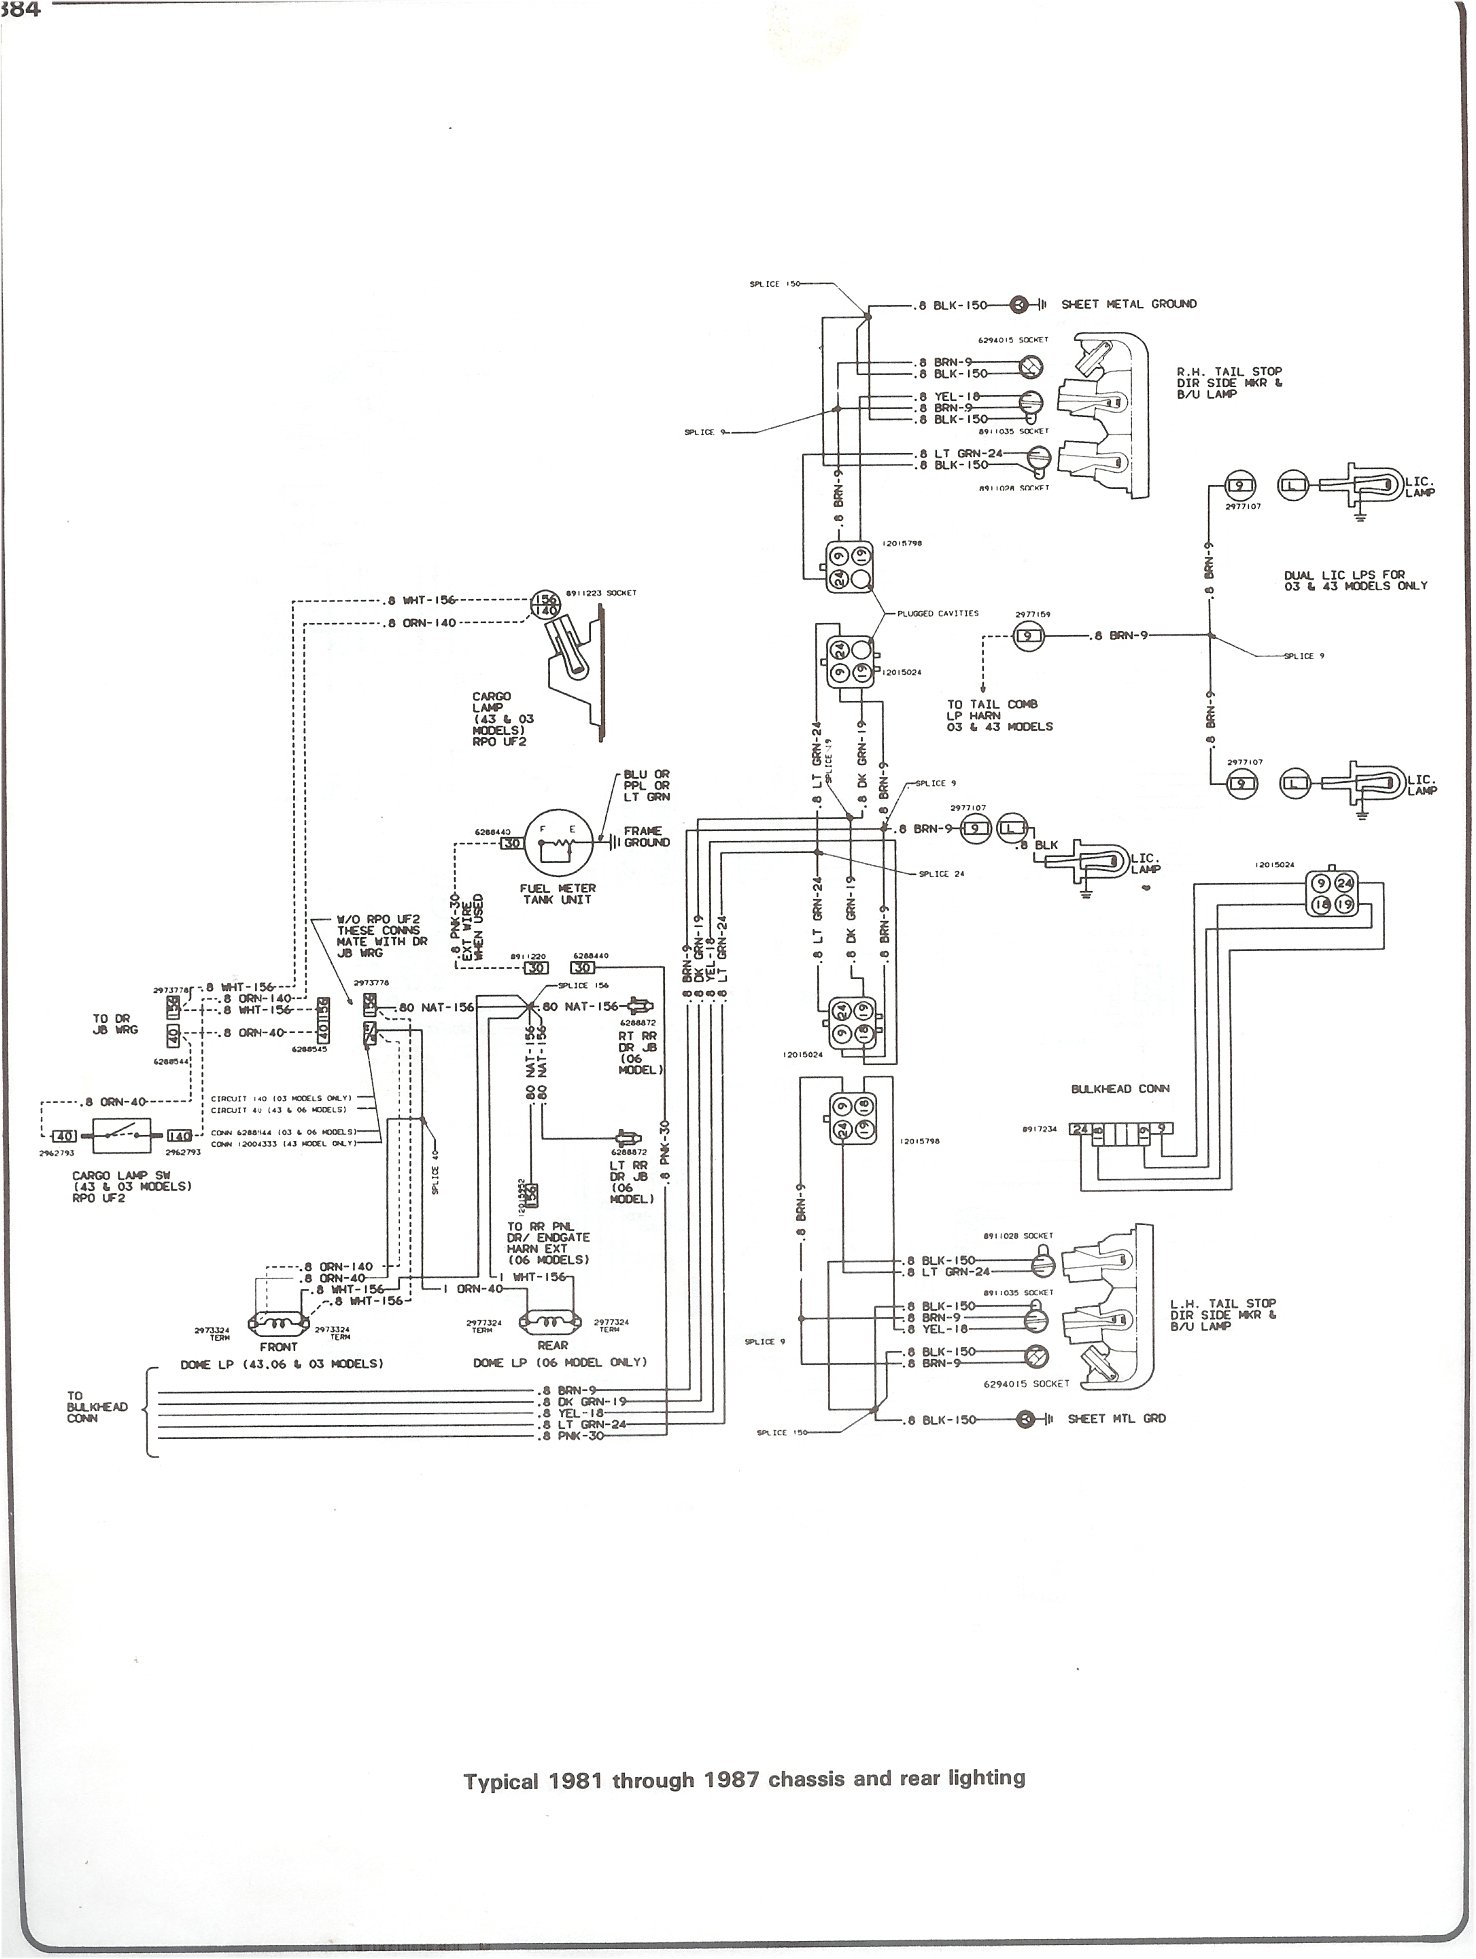 1991 Gmc Suburban Wiring Diagram Schematic Reinvent Your 09 Honda Ruckus Starter For 3500 Experts Of U2022 Rh Evilcloud Co Uk 1988 Truck Diagrams